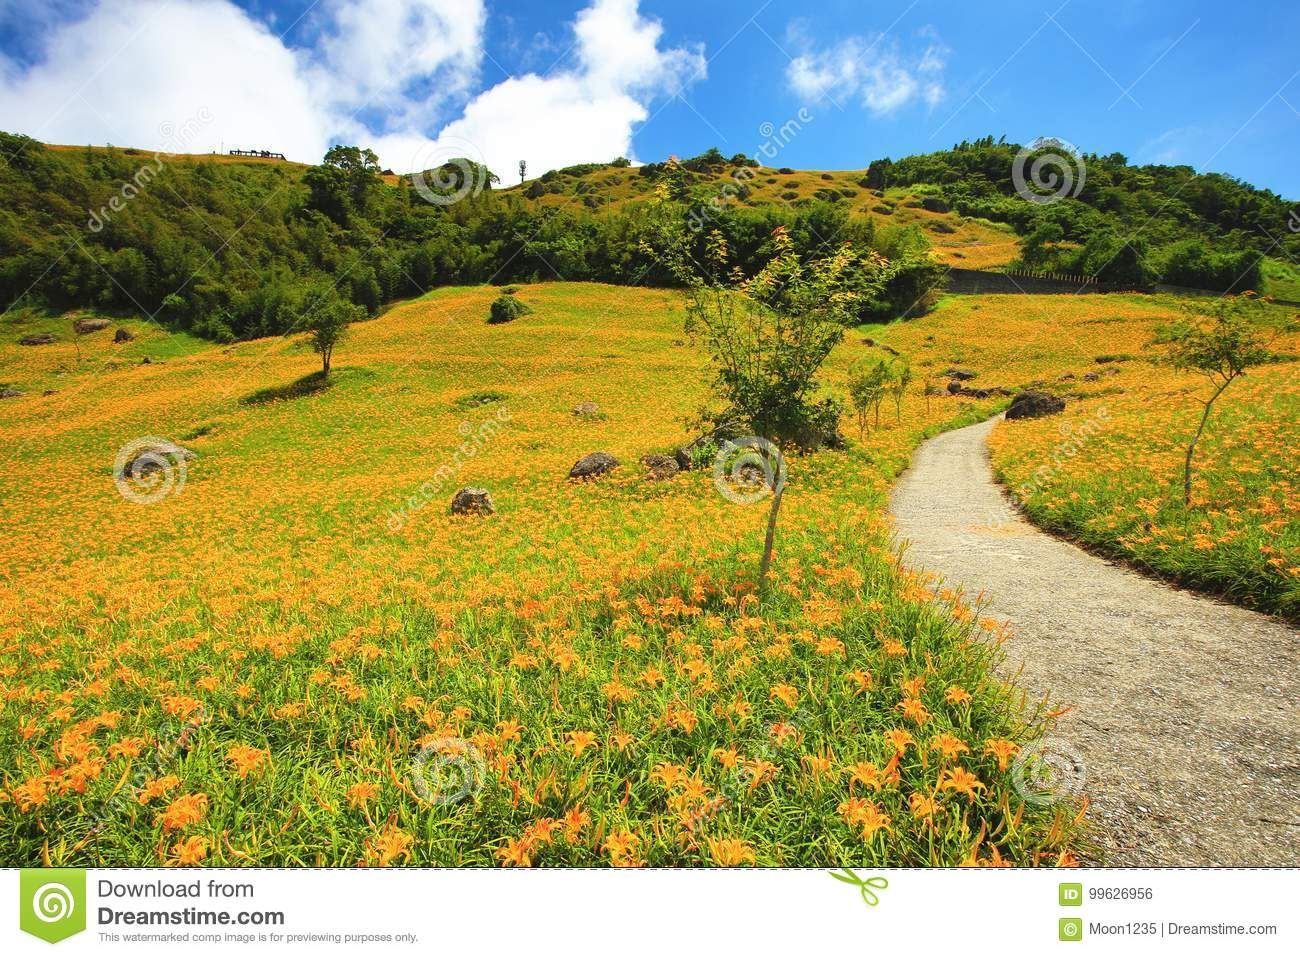 Beautiful scenery of daylily flowers blooming among the mountains beautiful scenery of daylily flowers blooming among the mountains with path izmirmasajfo